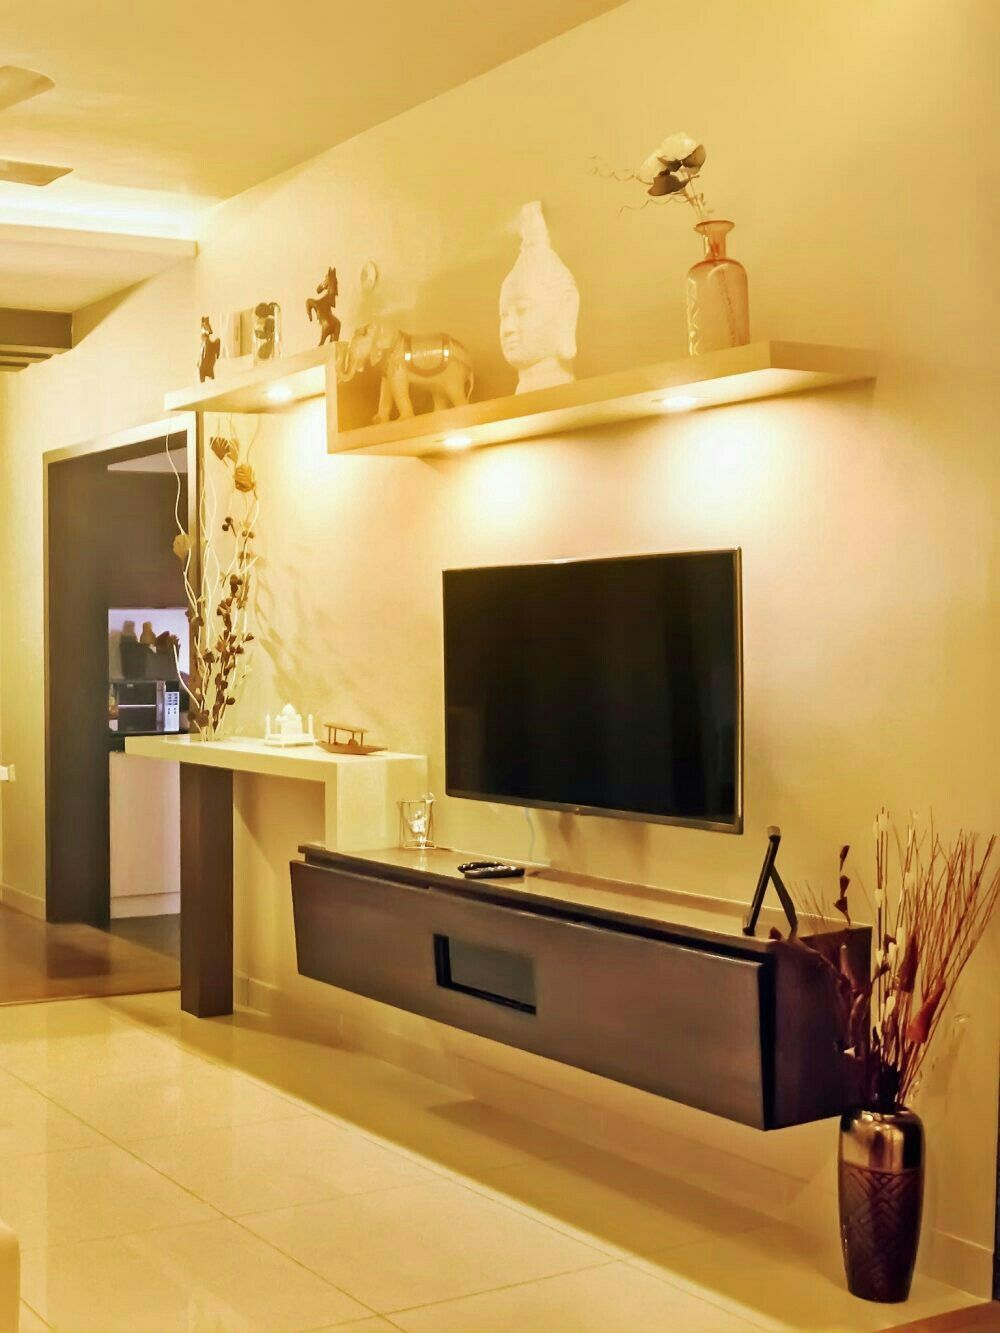 Pin by Namrata Shanbhogue on Home Ideas | Pinterest | Tv units, Tv ...